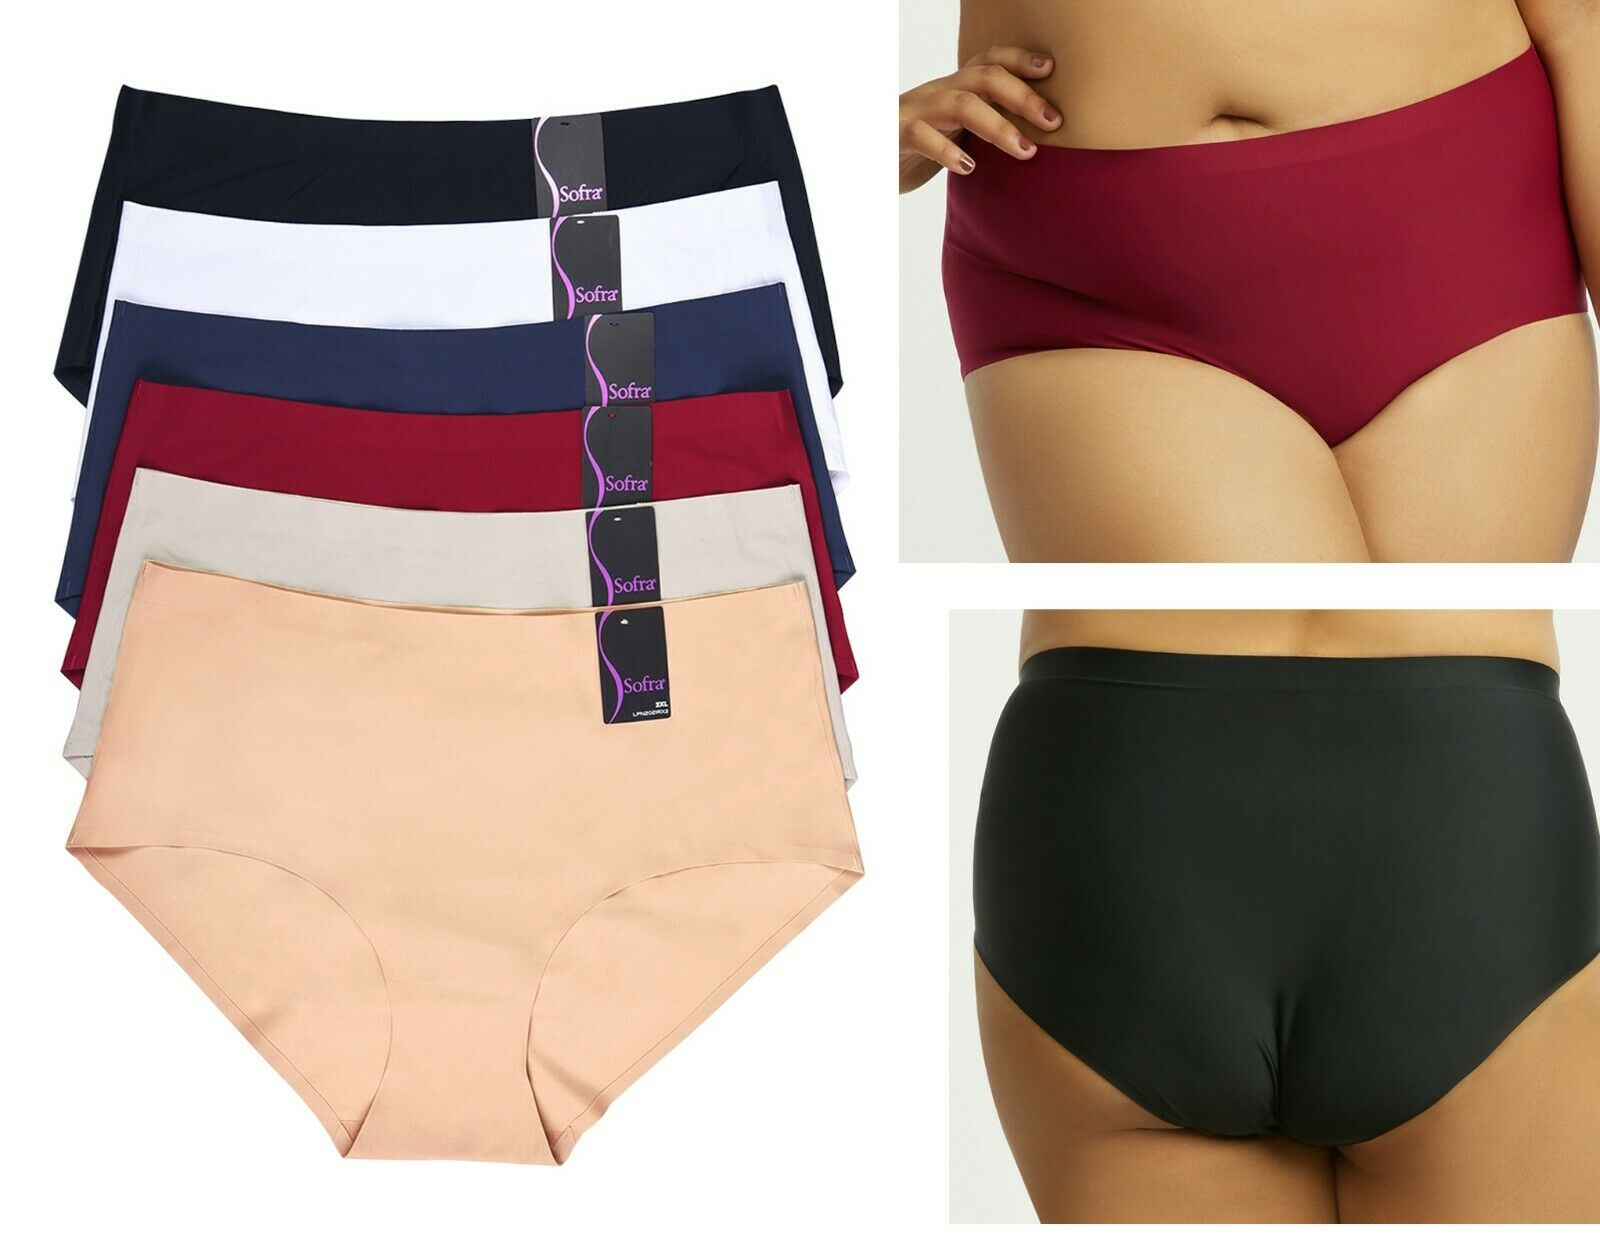 6 Women 2X 3X Plus Size High Waist No Show Ultra Seamless Underwear Brief Panty Clothing, Shoes & Accessories